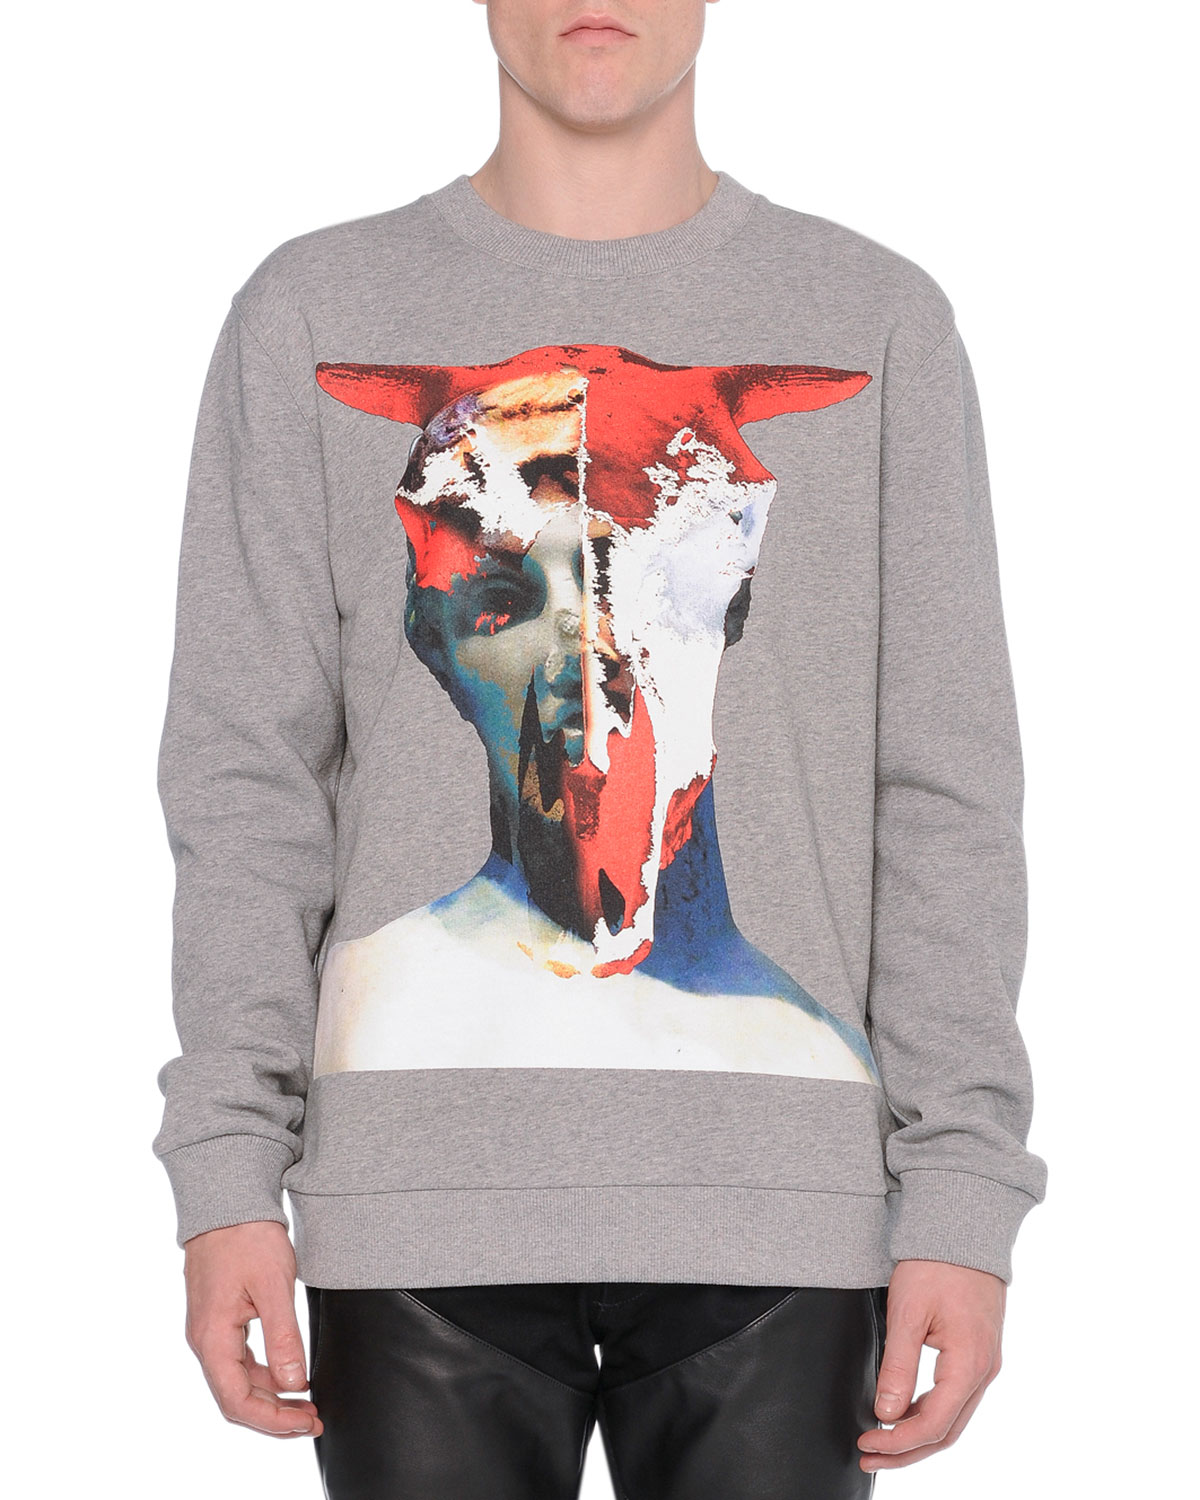 Bull-Skull Graphic Sweatshirt, Gray